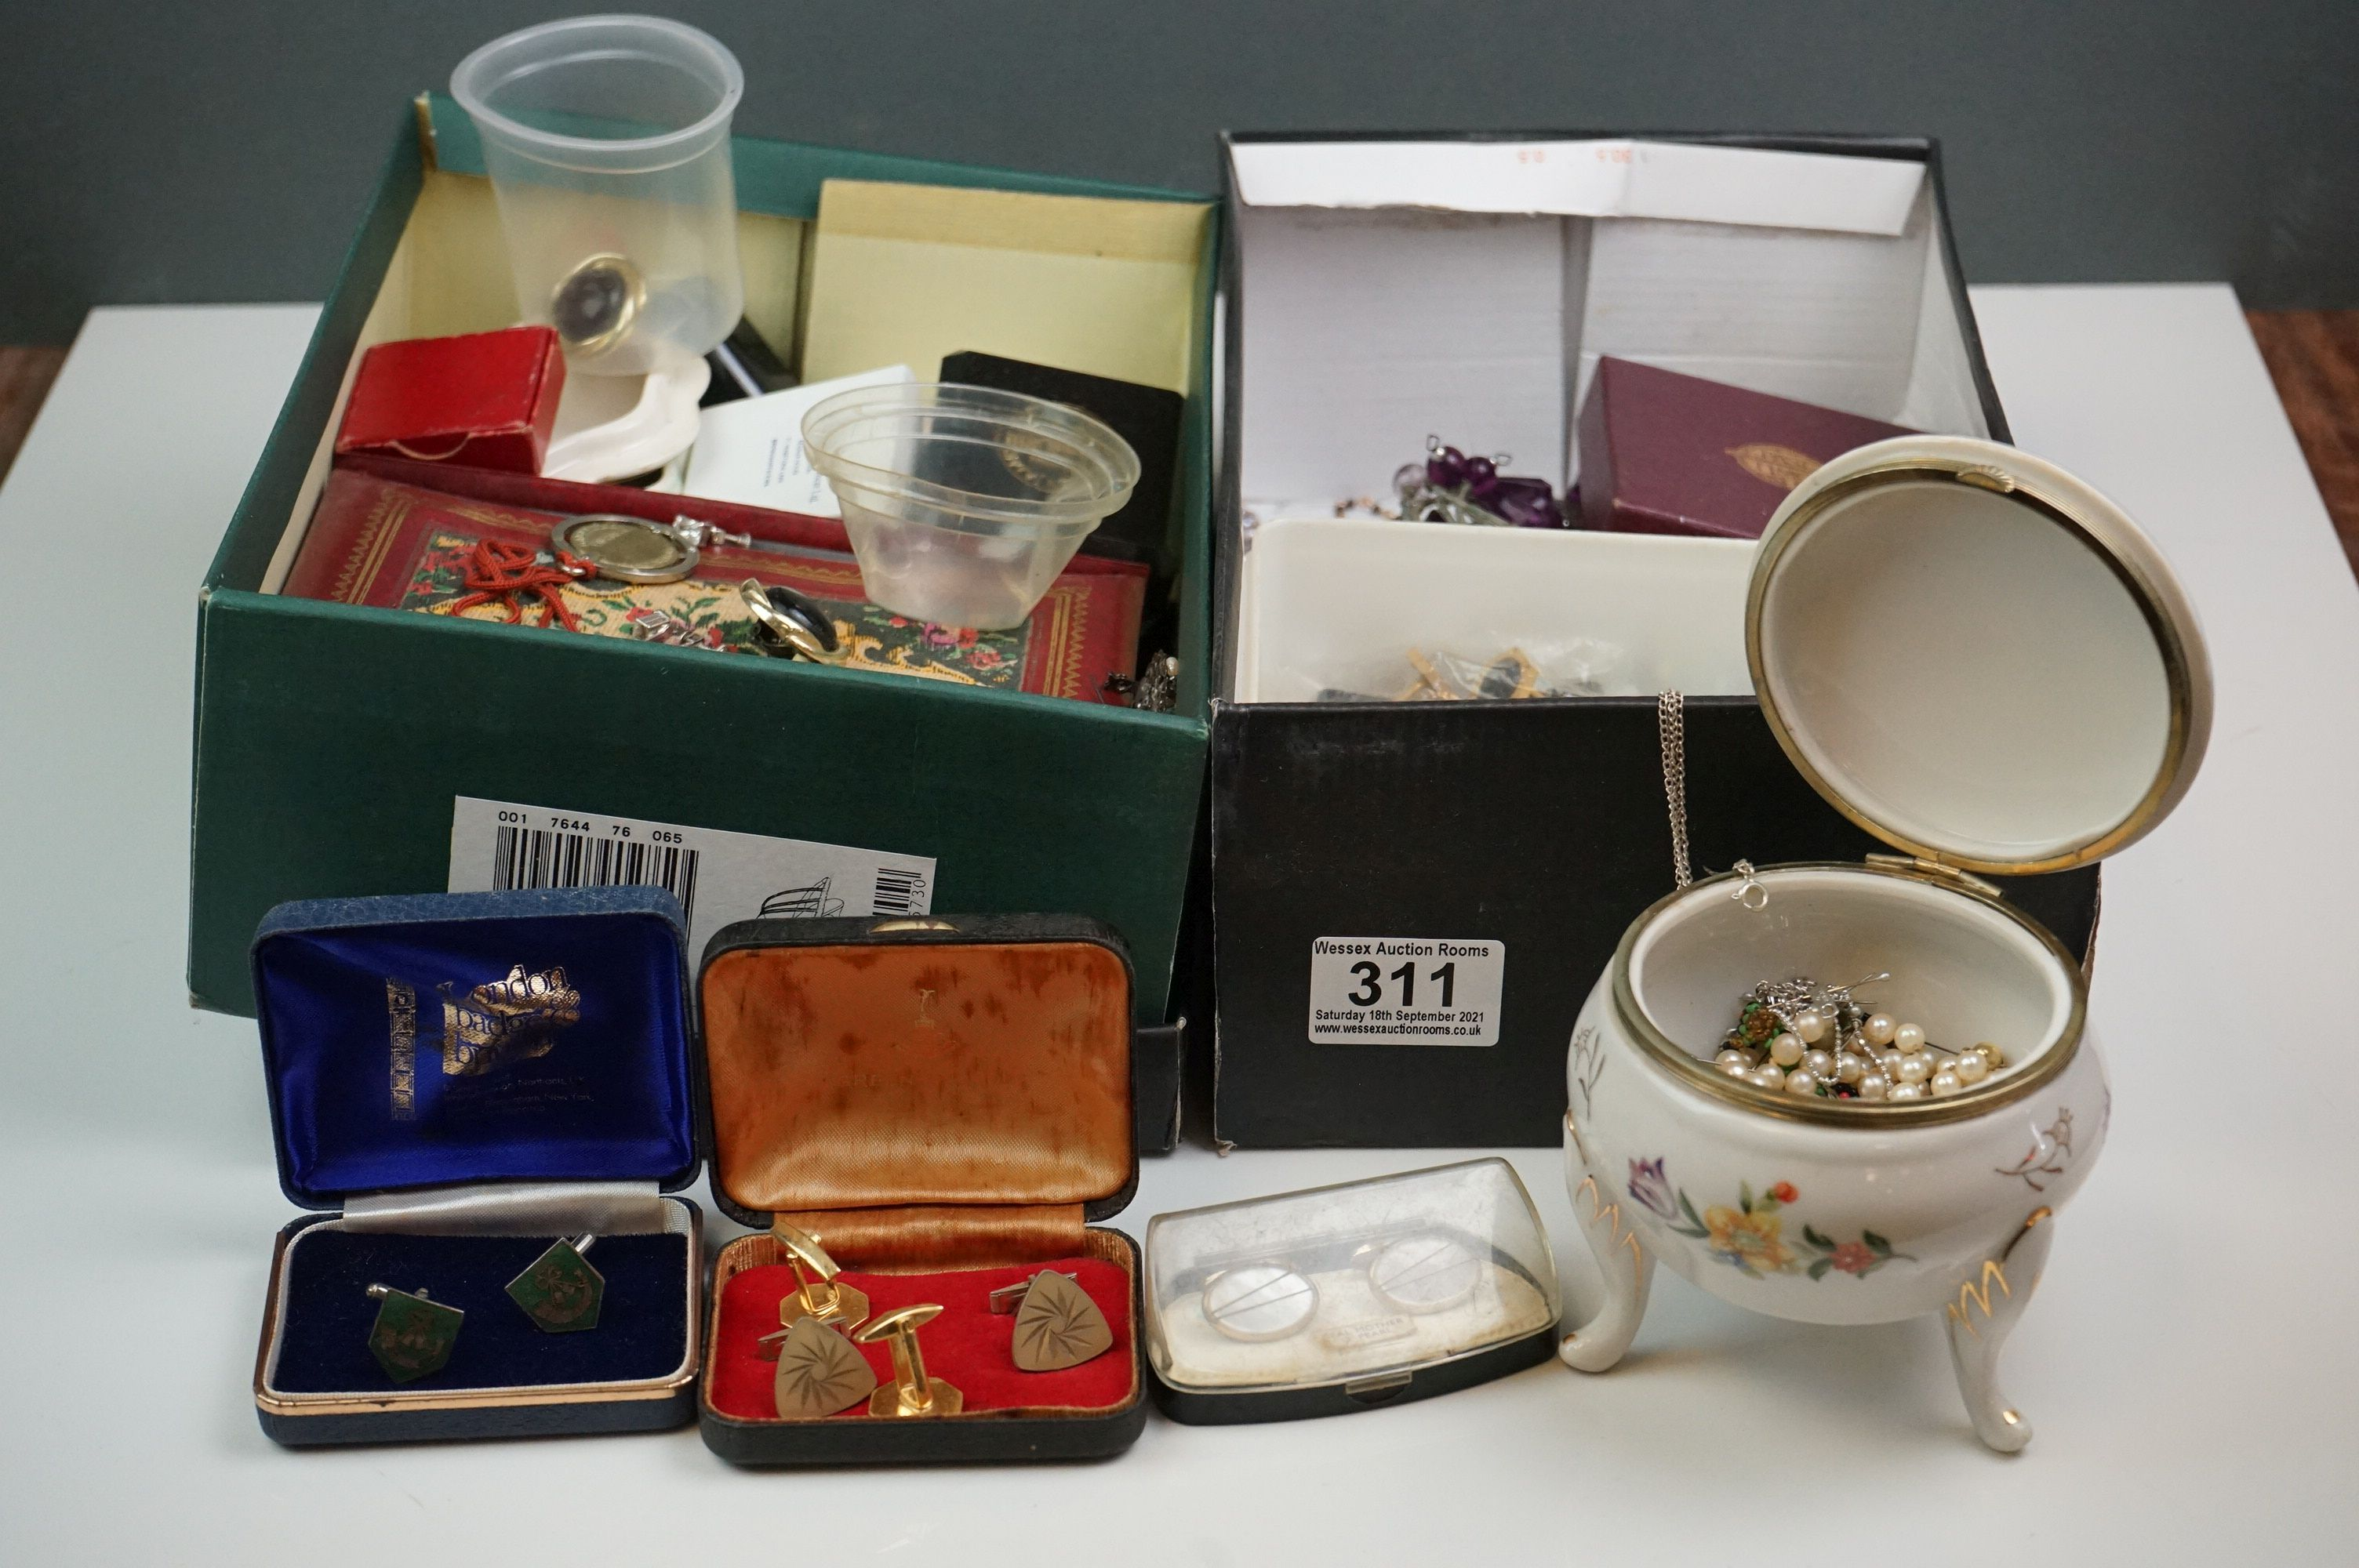 A collection of mainly vintage costume jewellery to include rings, earrings and bracelets.